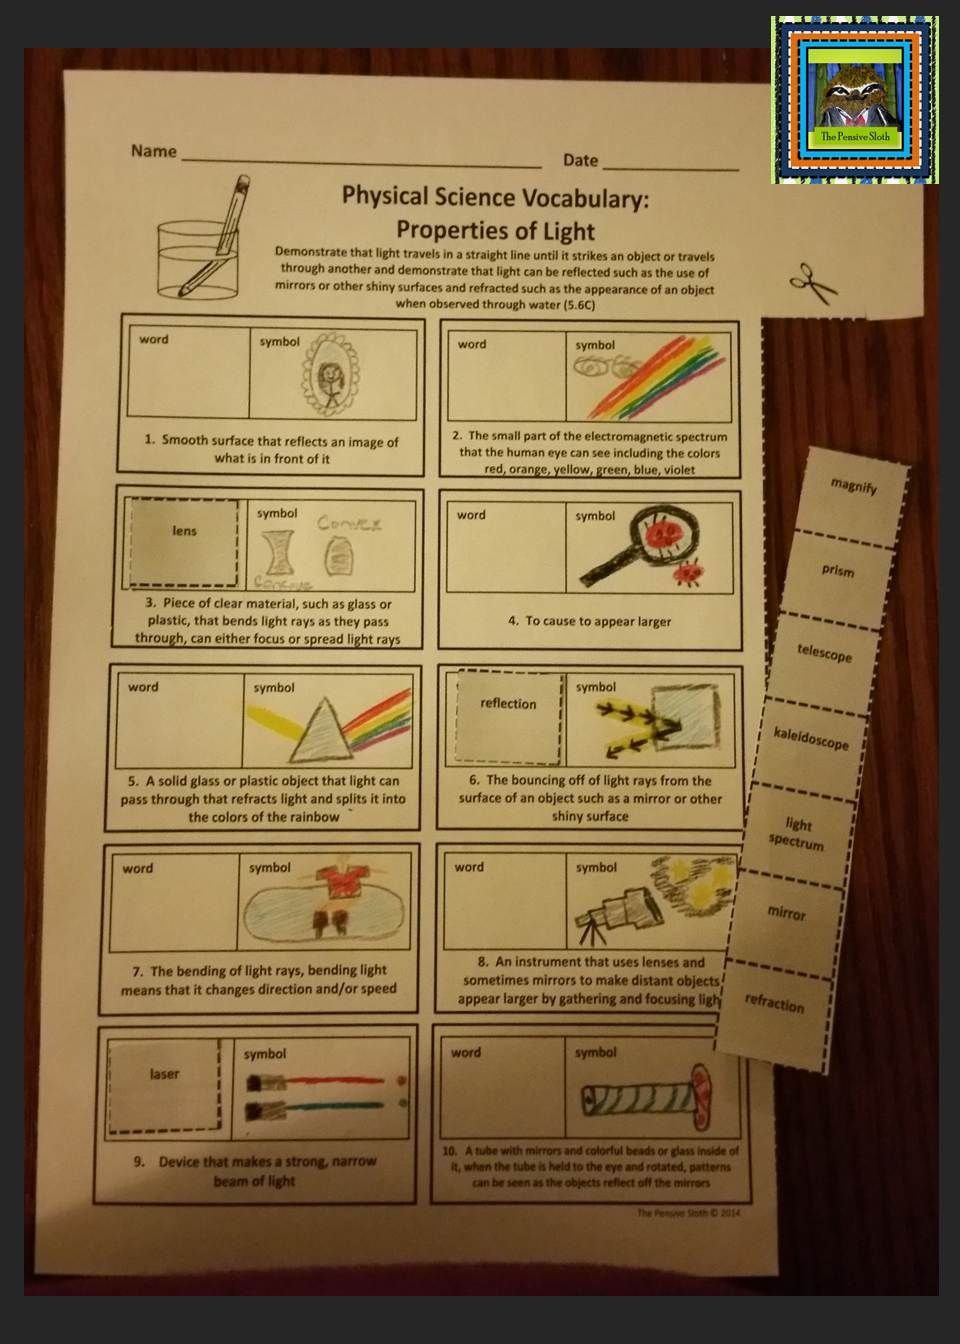 5th grade physical science staar matter solutions light energy properties of light vocabulary cut and paste activity including reflection and refraction great review for 5th grade science staar test fandeluxe Image collections